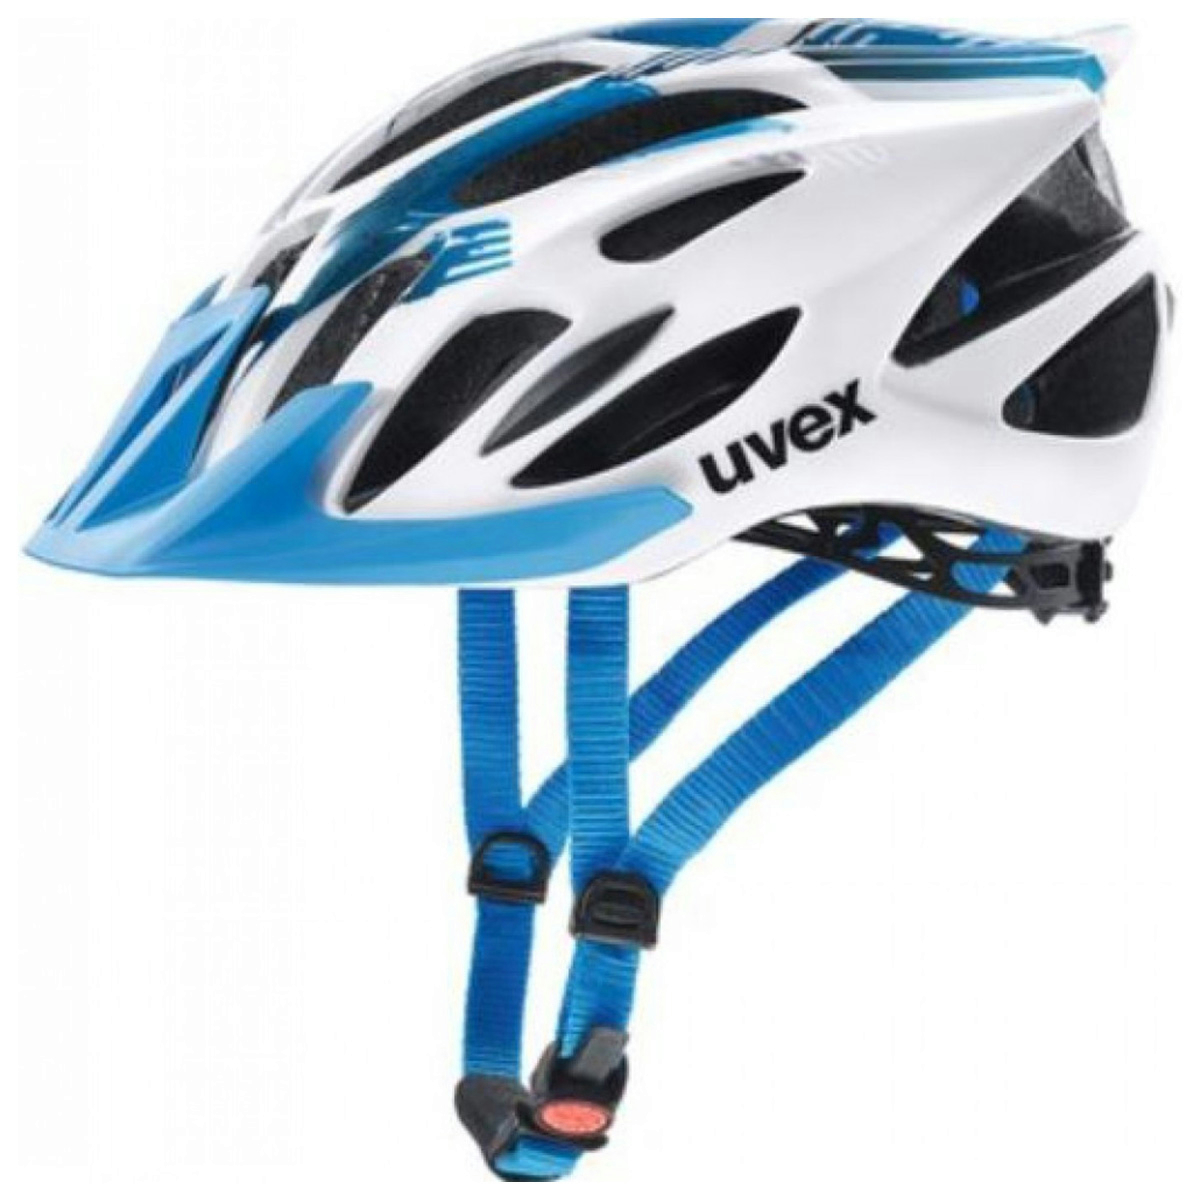 Bikehelm FLASH blau